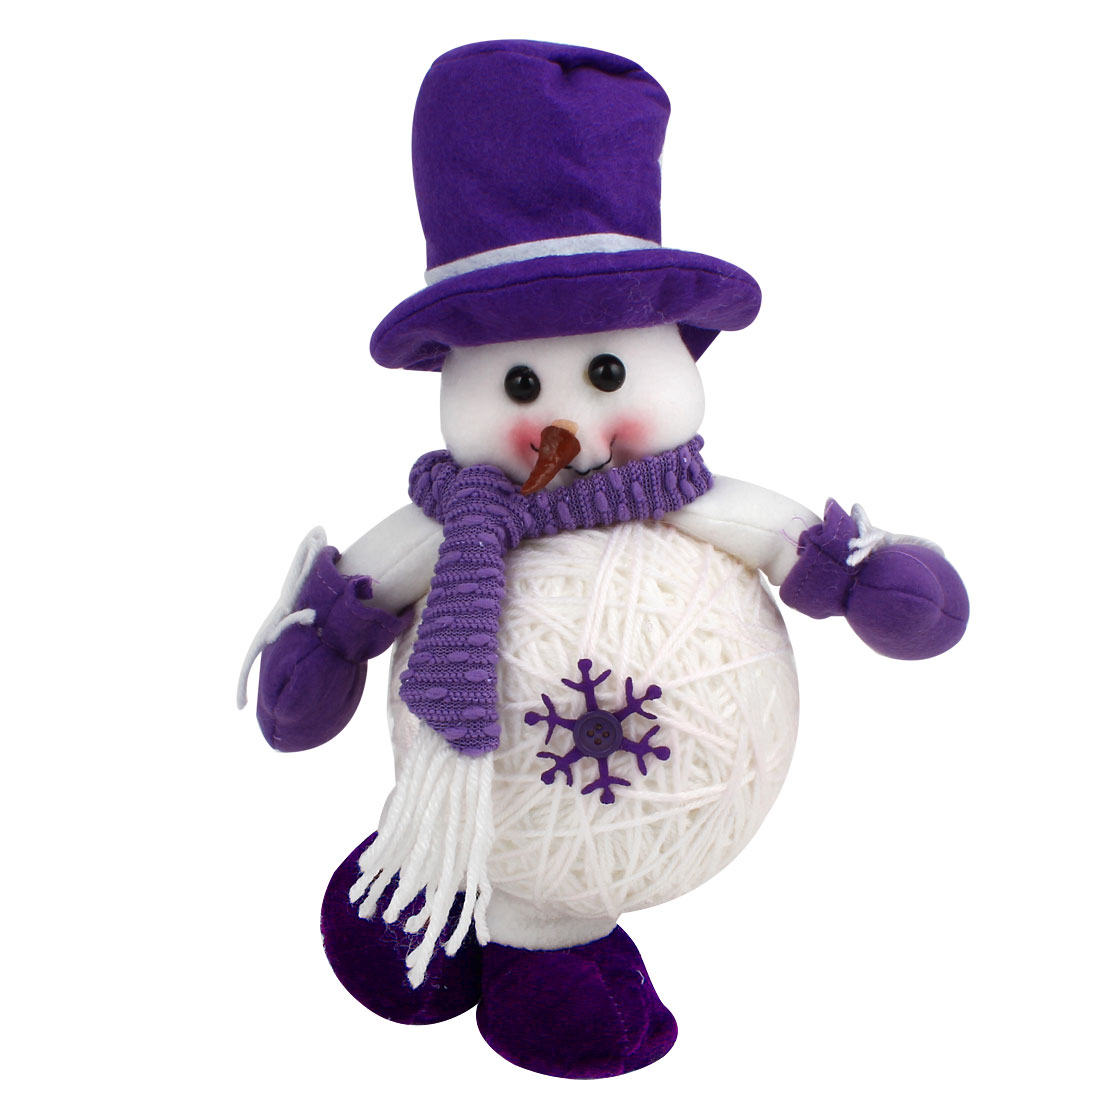 Snowman Shape Christmas Toy Doll Gift Purple White for Xmas Trees Ornament